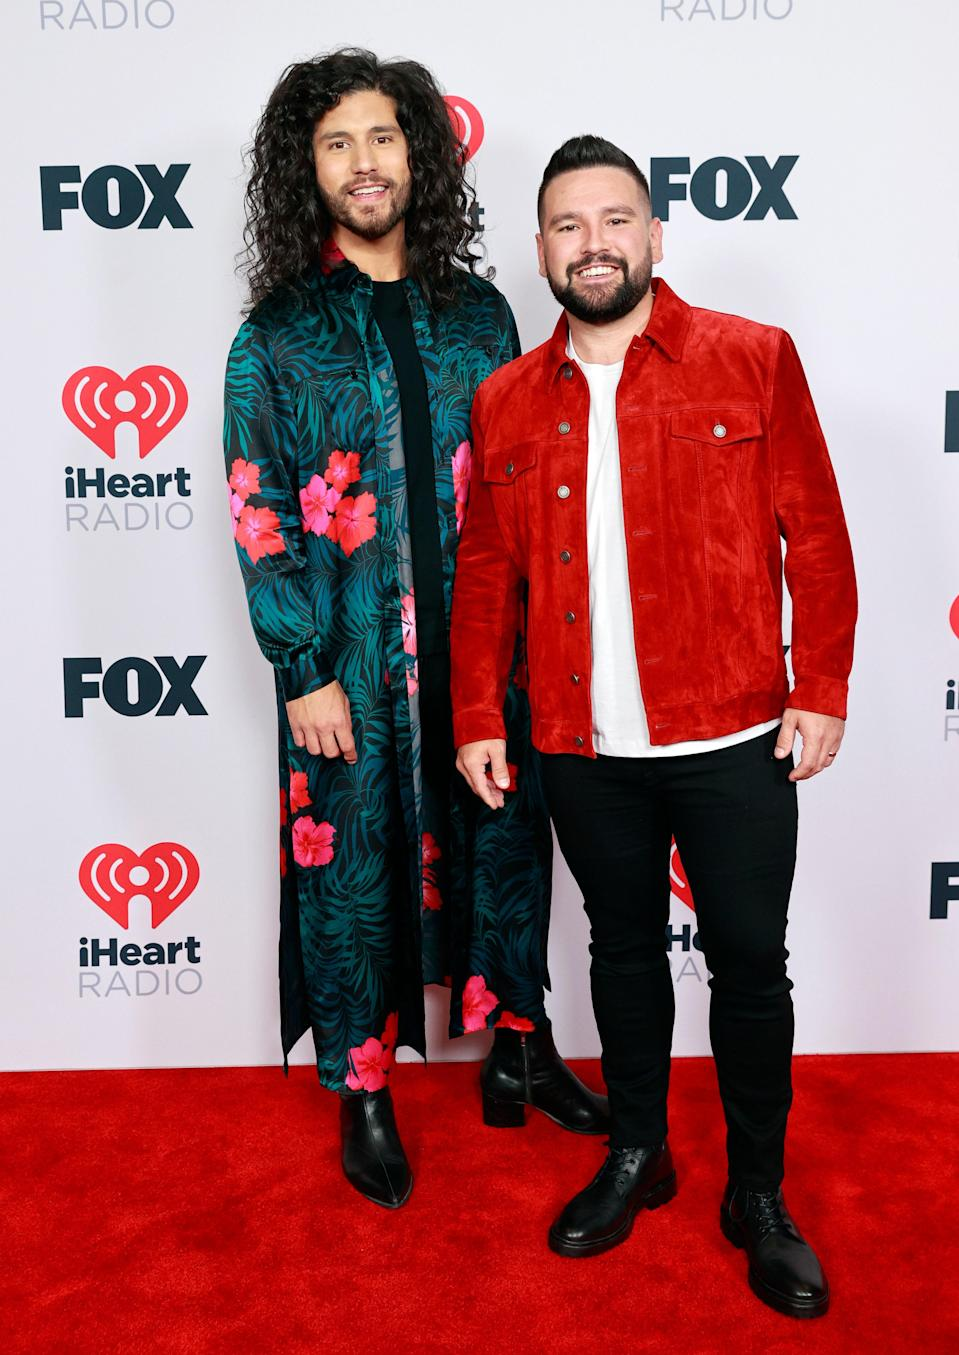 Dan and Shay played with pops of color opting for tropical prints and statement jackets.